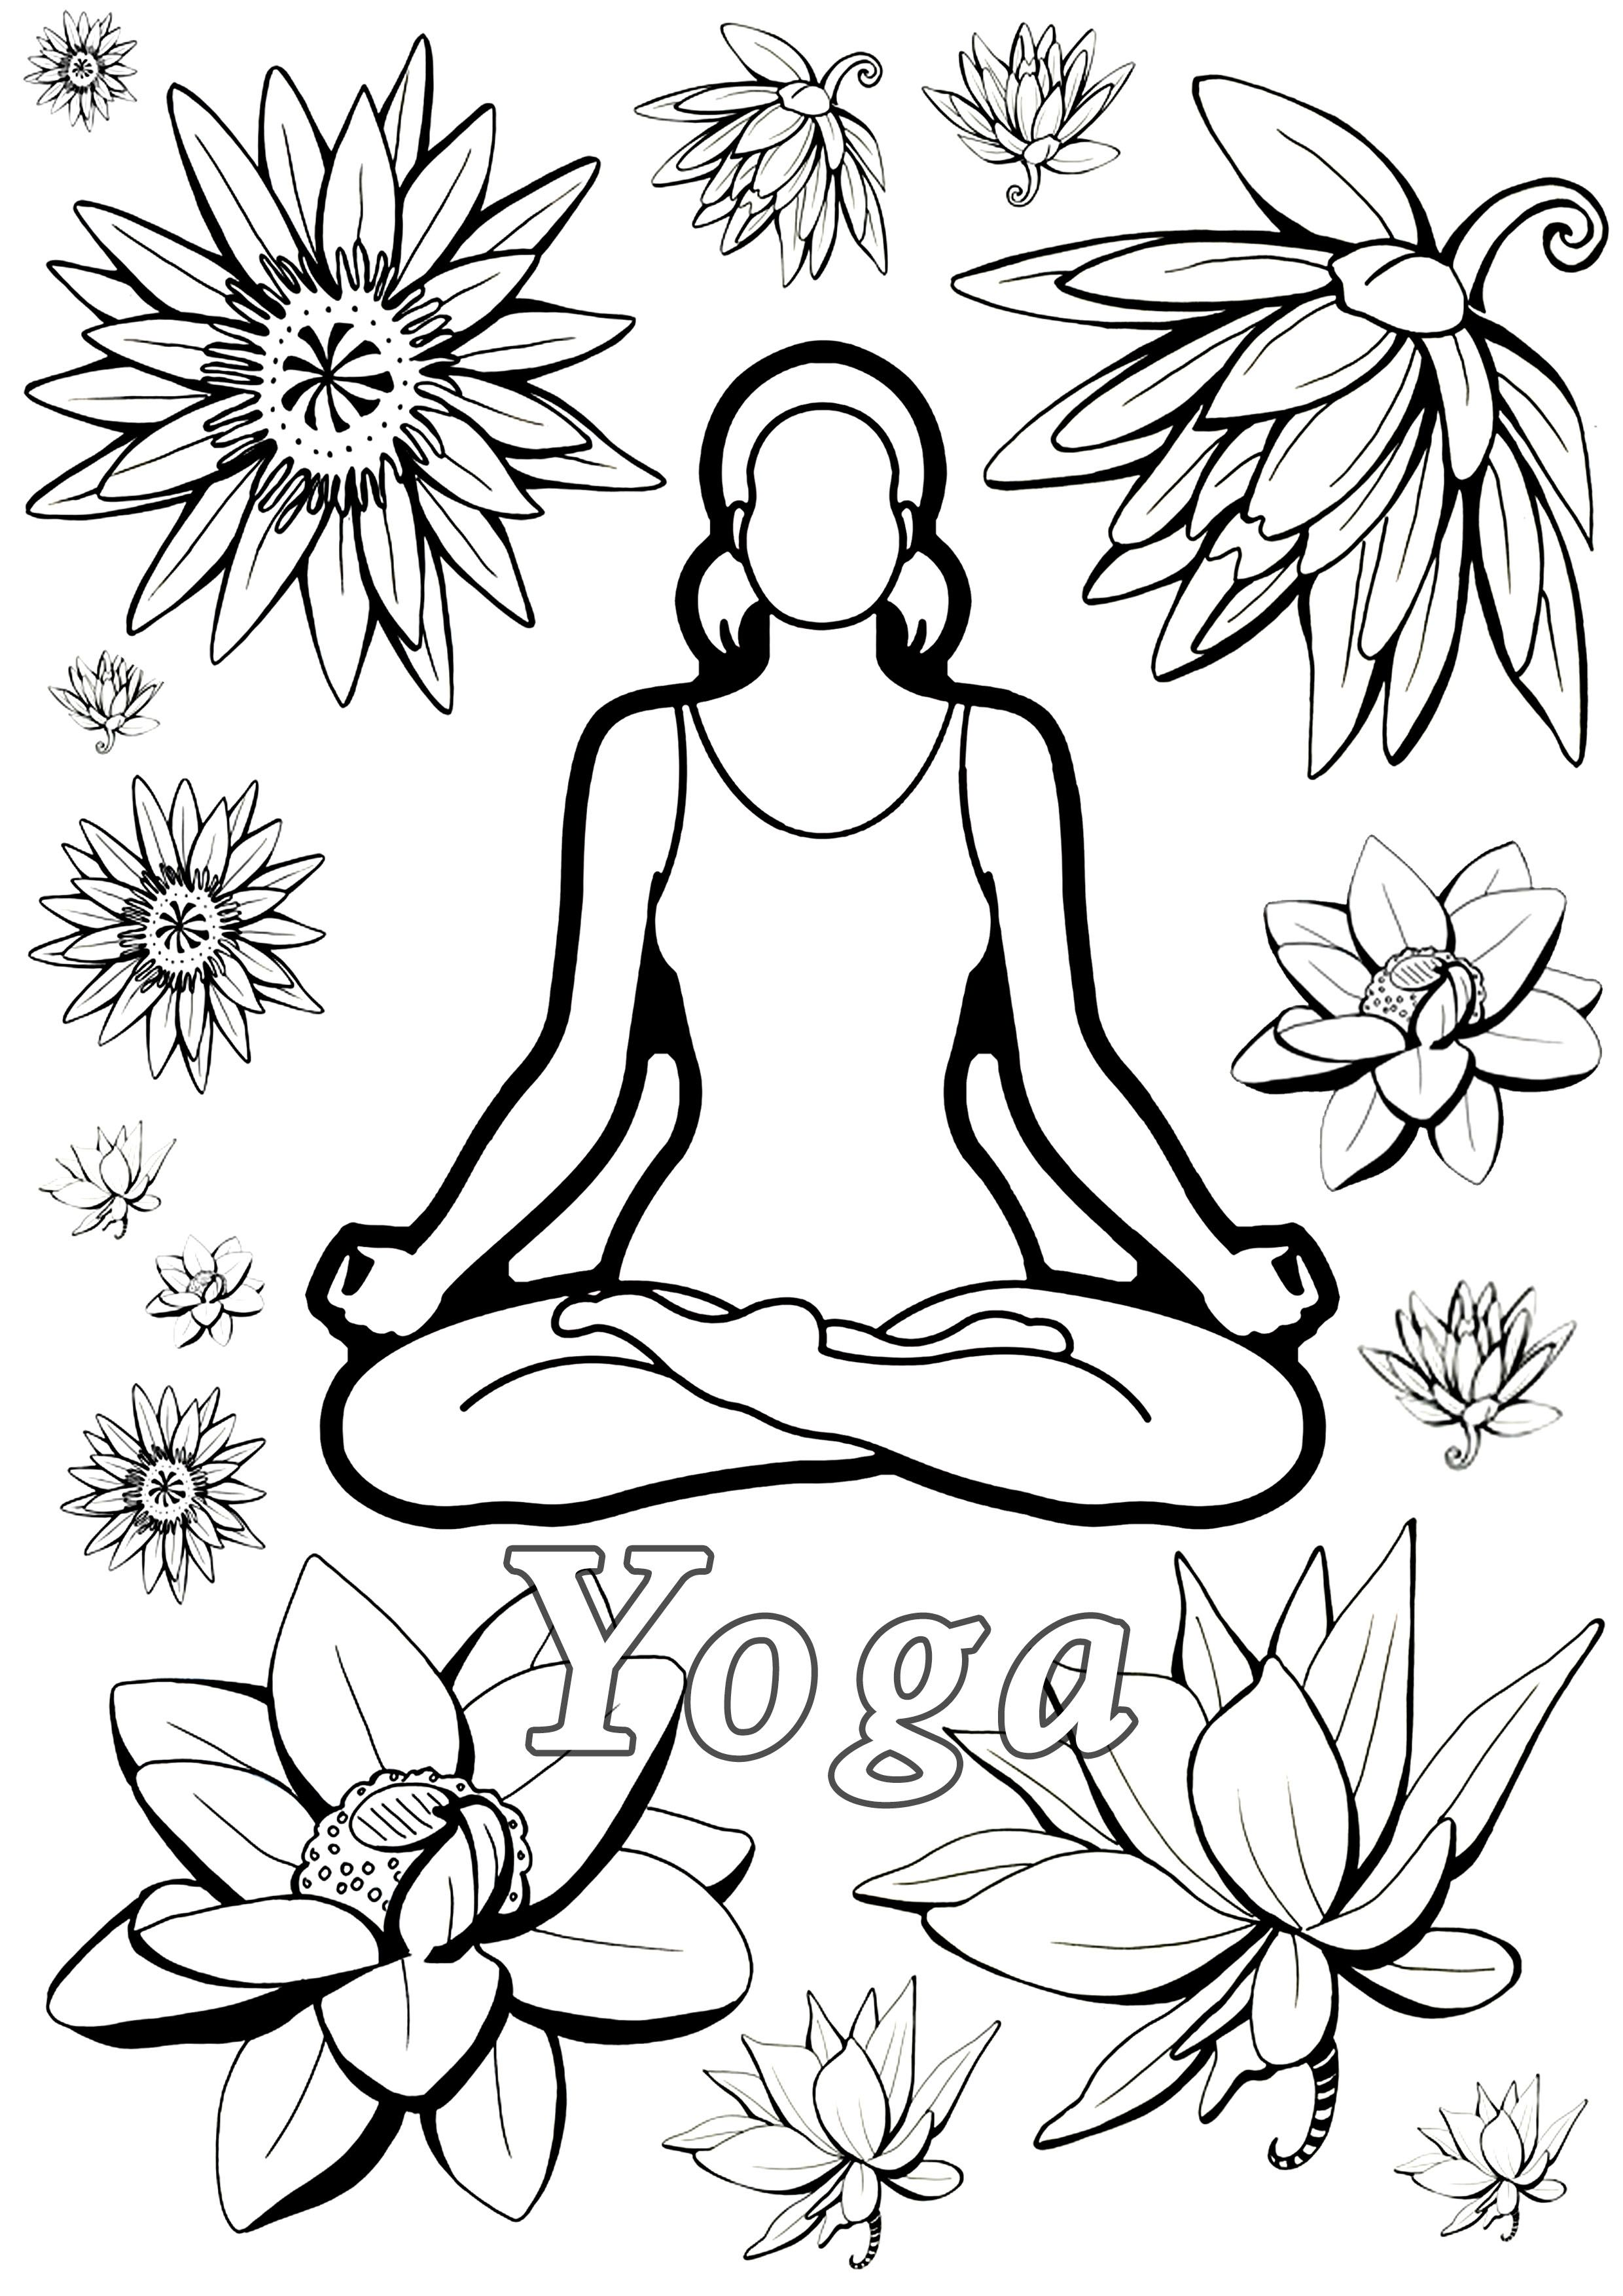 Coloring Page Inspired By Yoga Woman Meditating And Lotus Flowers From The Gallery Zen Mandala Coloring Pages Coloring Pages Flower Drawing [ 3508 x 2480 Pixel ]